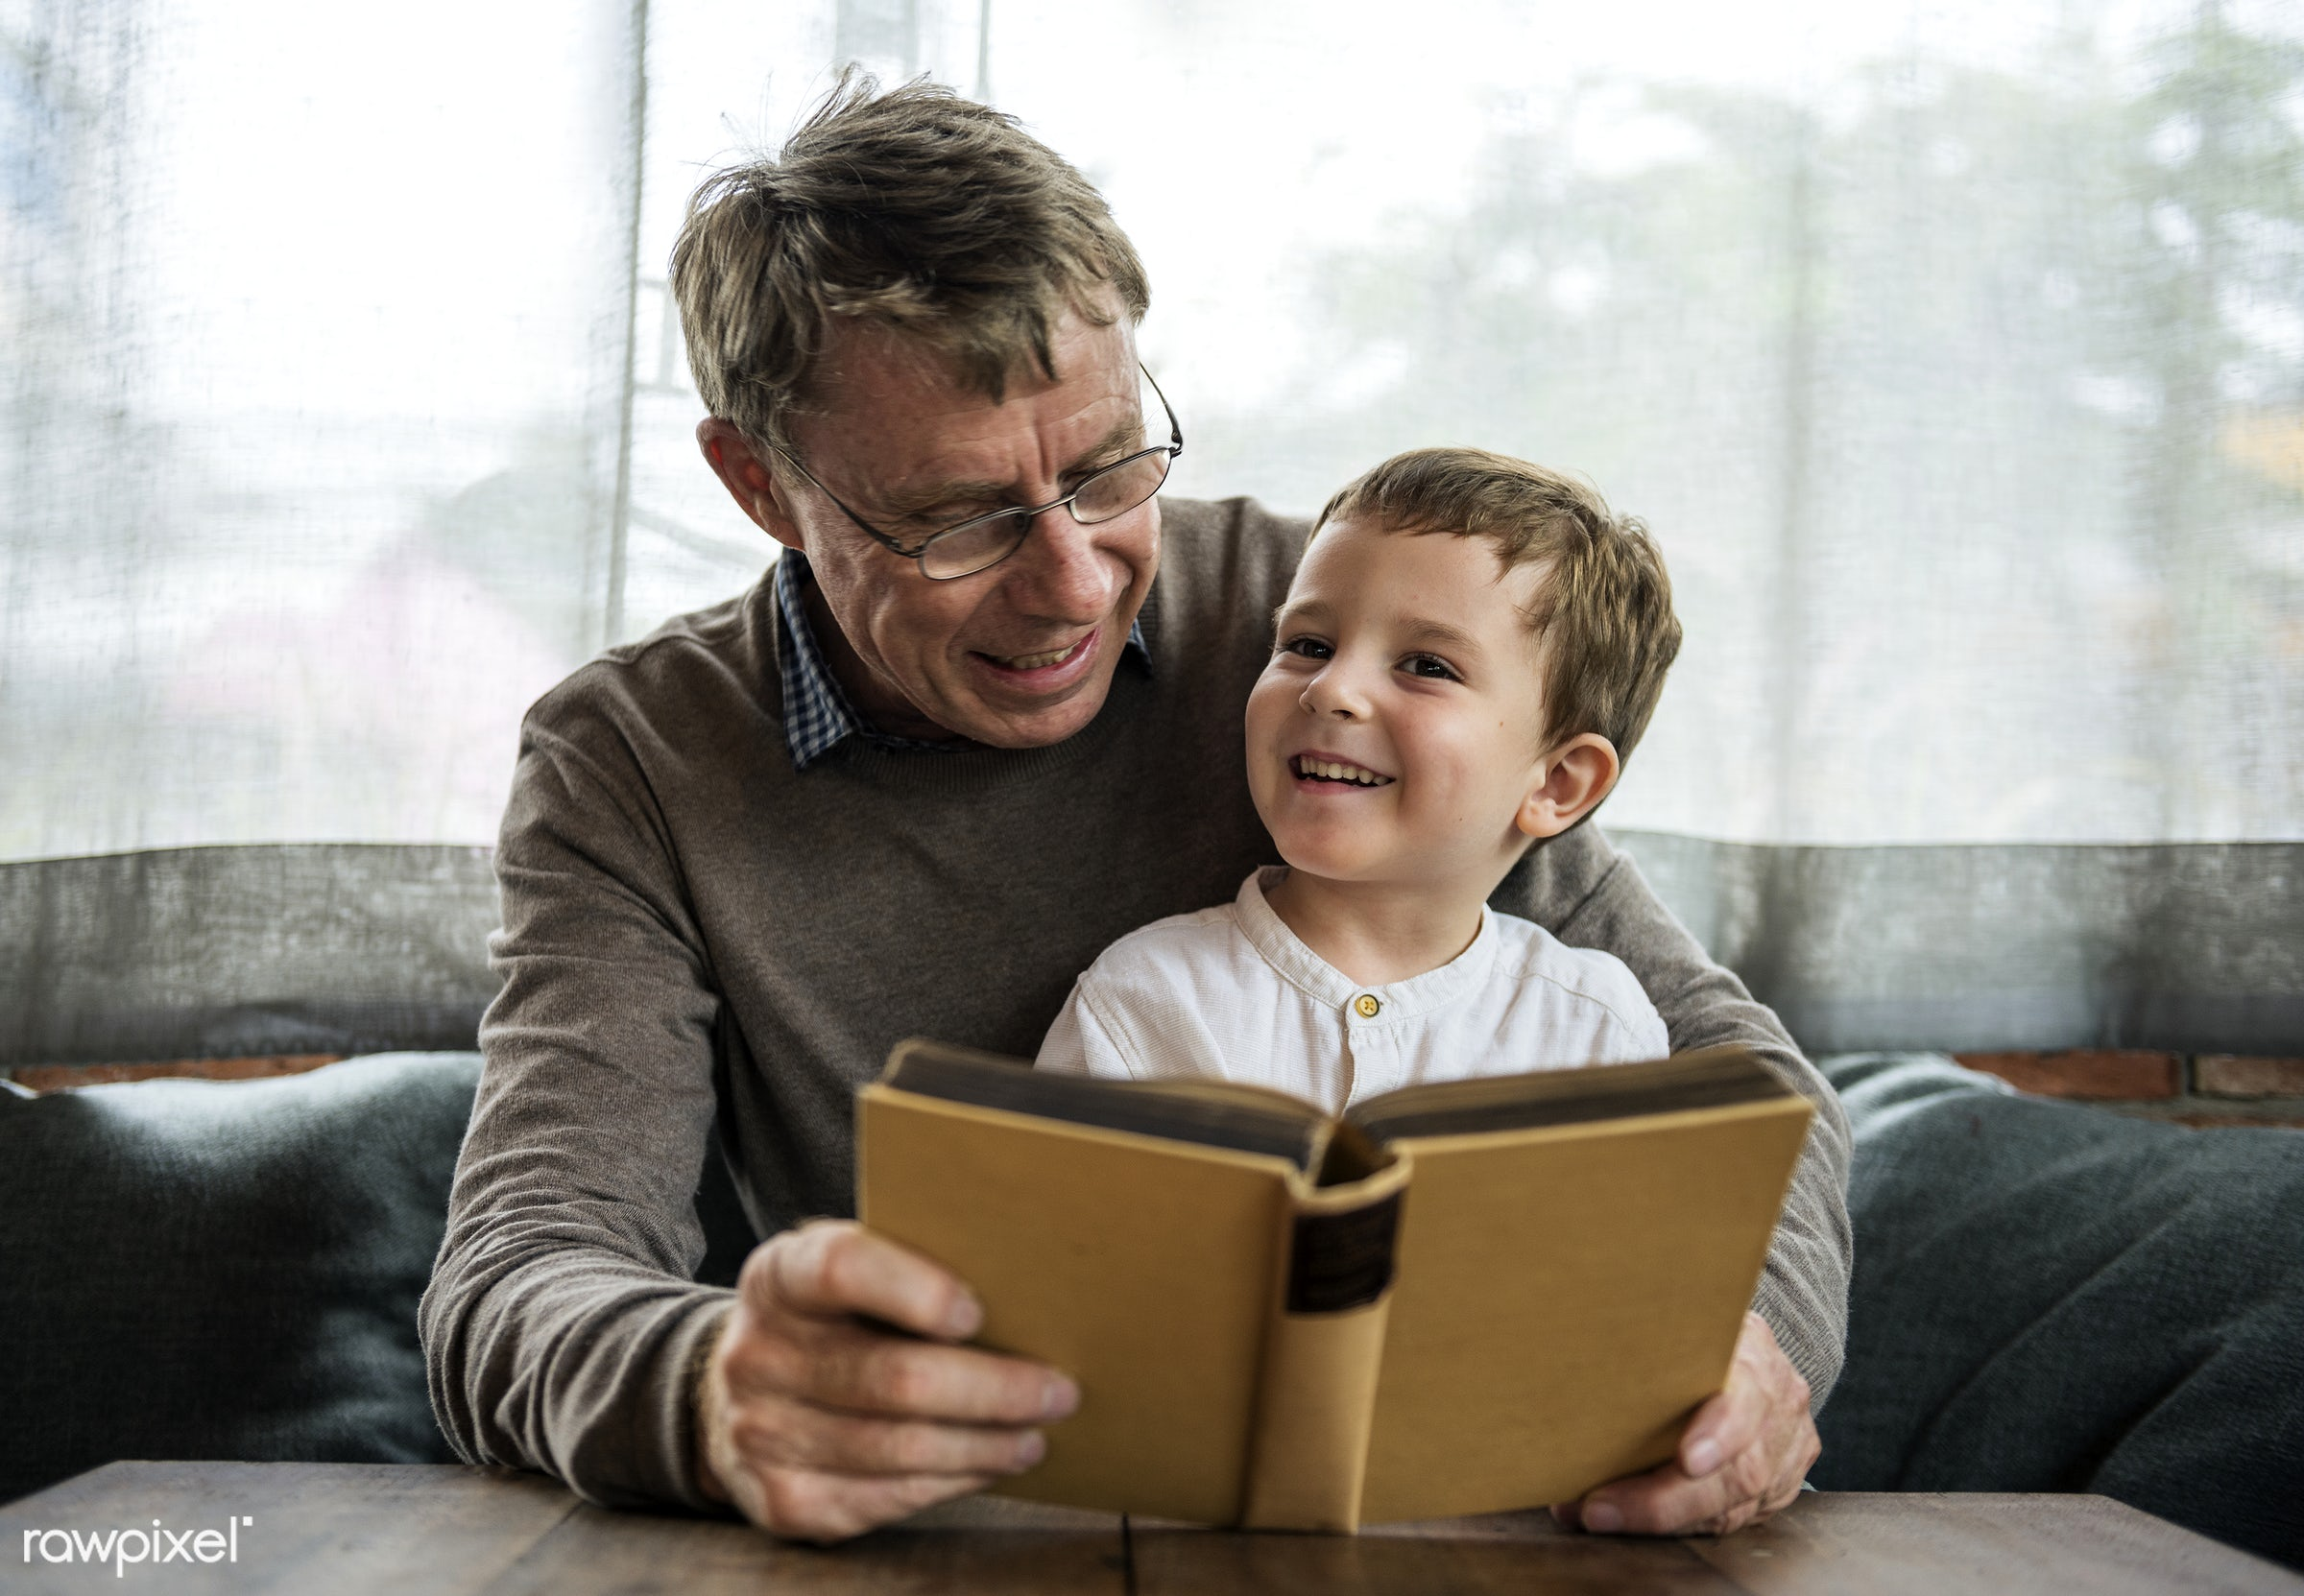 Grandfather and grandson reading a book together - book, boy, child, elderly, grandfather, grandson, kid, people, reading,...